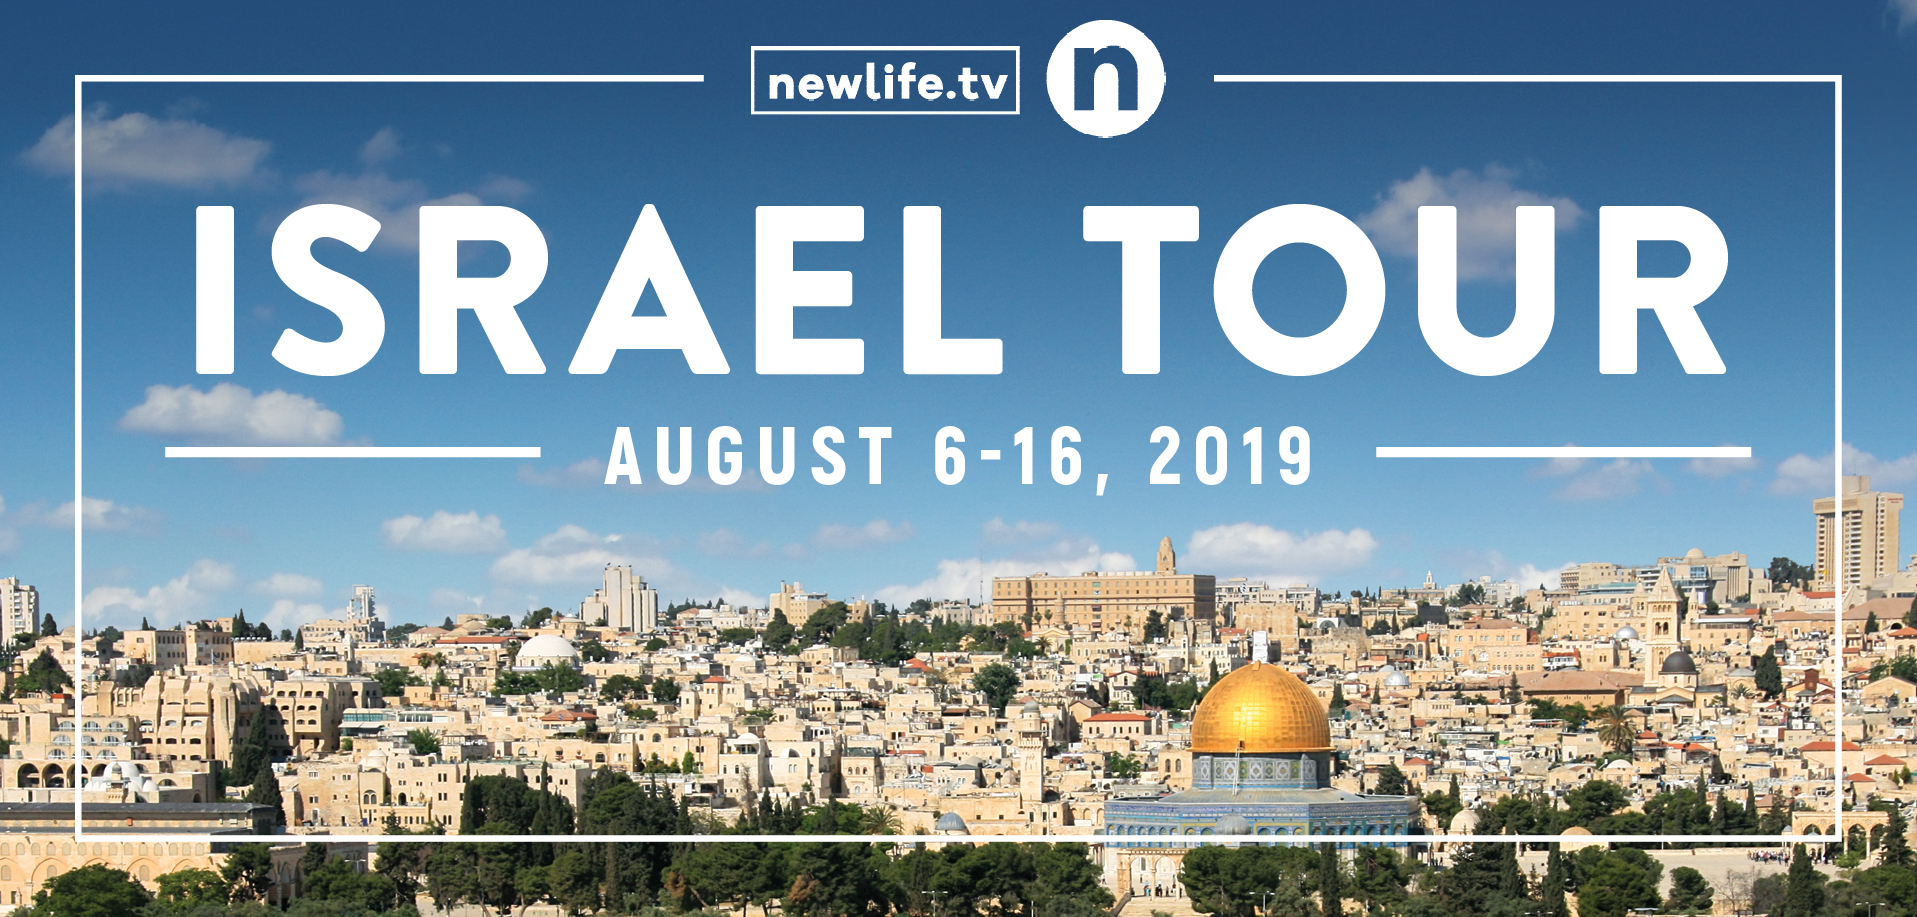 Take a Christian TourWX with newlife.tv - Christian Tour to Israel - August 6 - 16